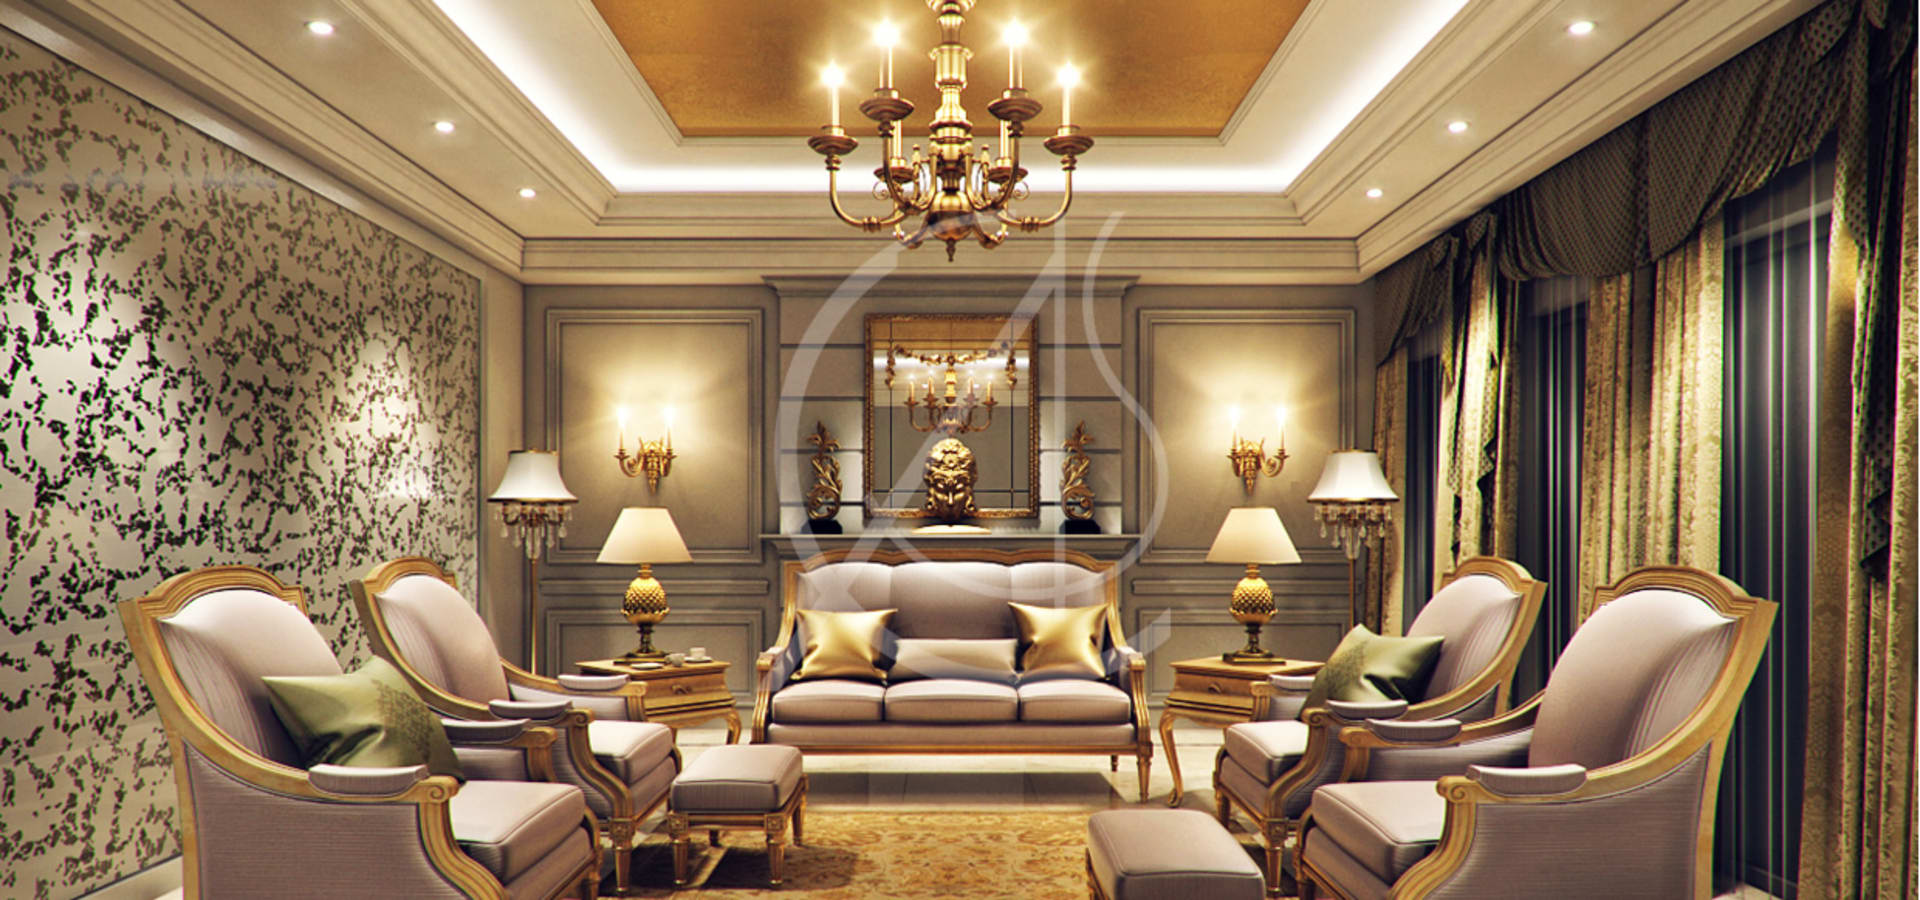 Modern classic villa interior design by comelite for Modern classic home interior design